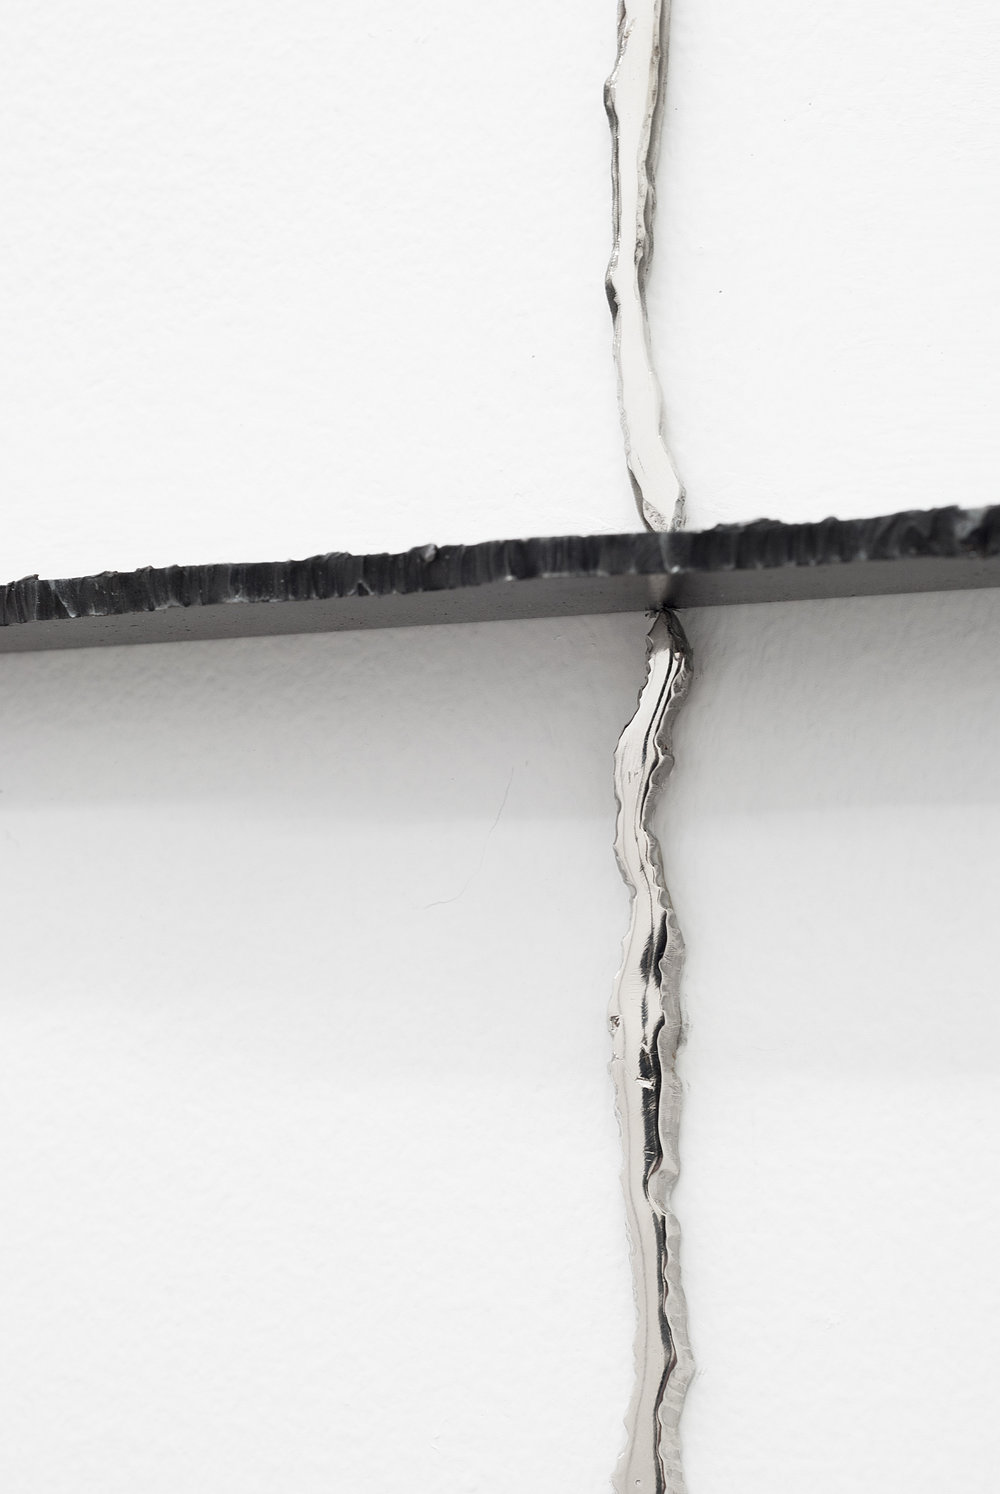 Never too late to mend (Detail), Nickel plated, mirror polished steel, graphite, wall marking,  76 X 60 inches, 2013